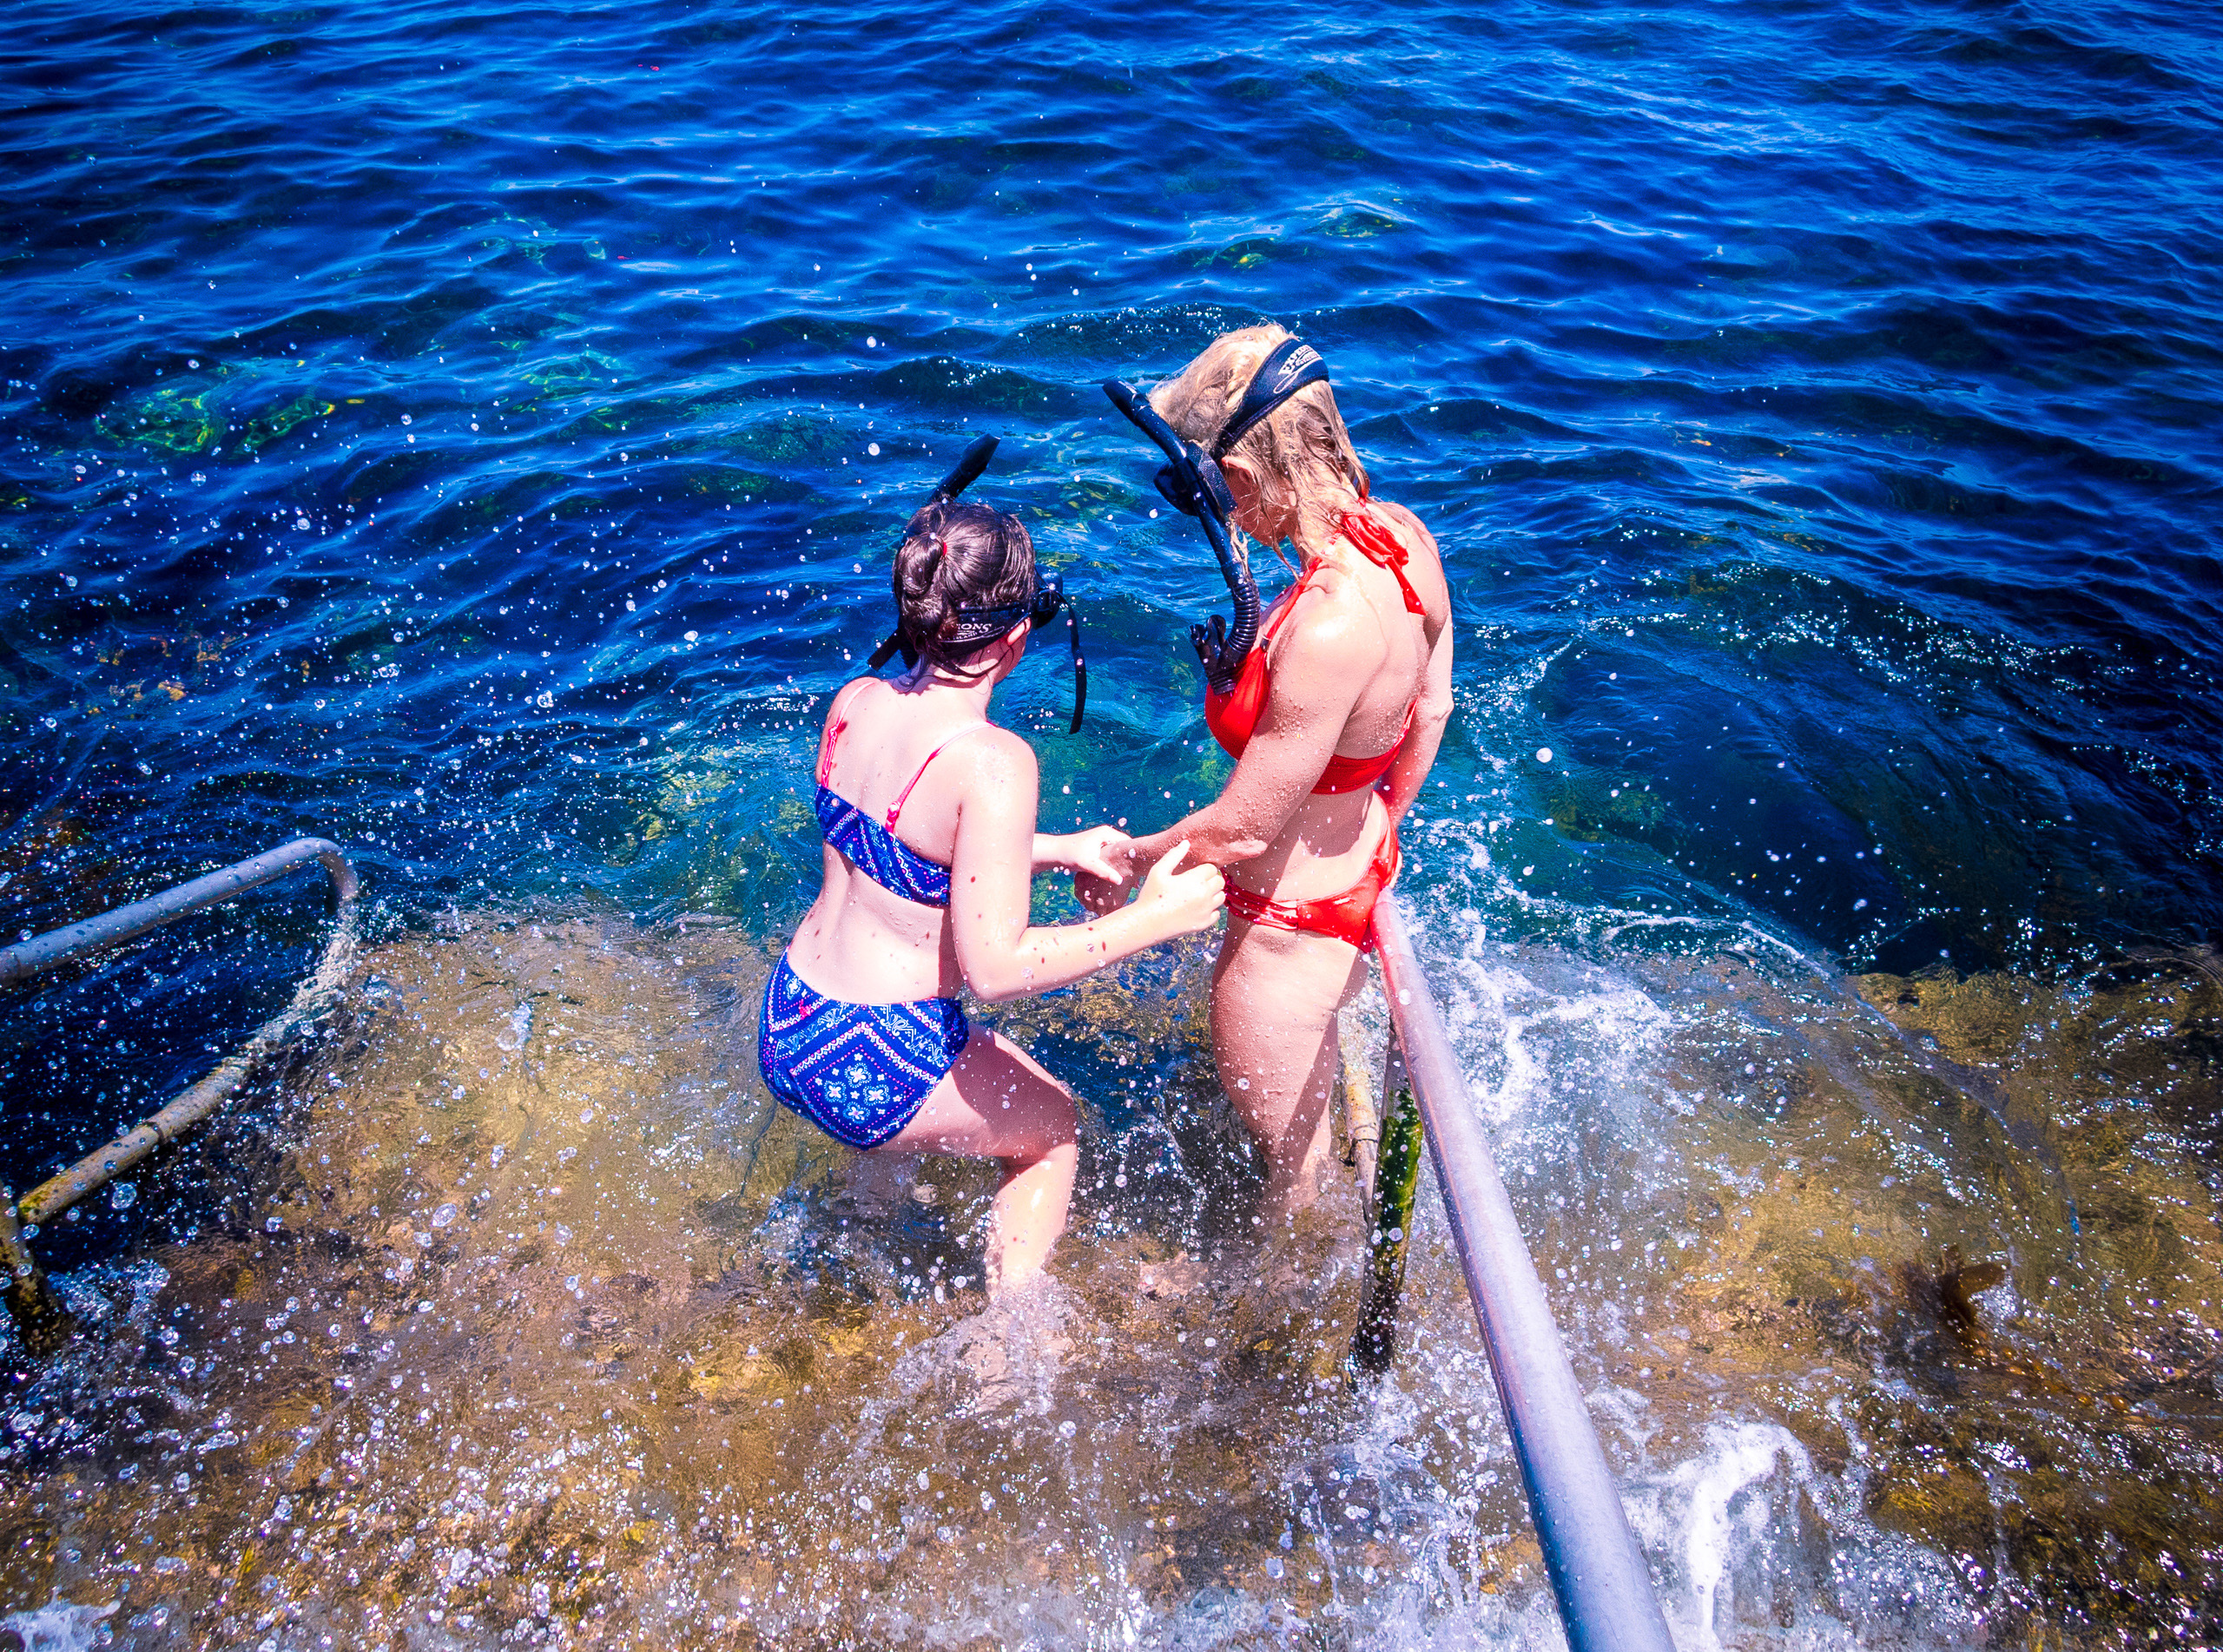 a family friend takes a young girl on her 1st snorkeling experience at the Casino Steps in Avalon, Catalina, Channel Islands, Los Angeles, California